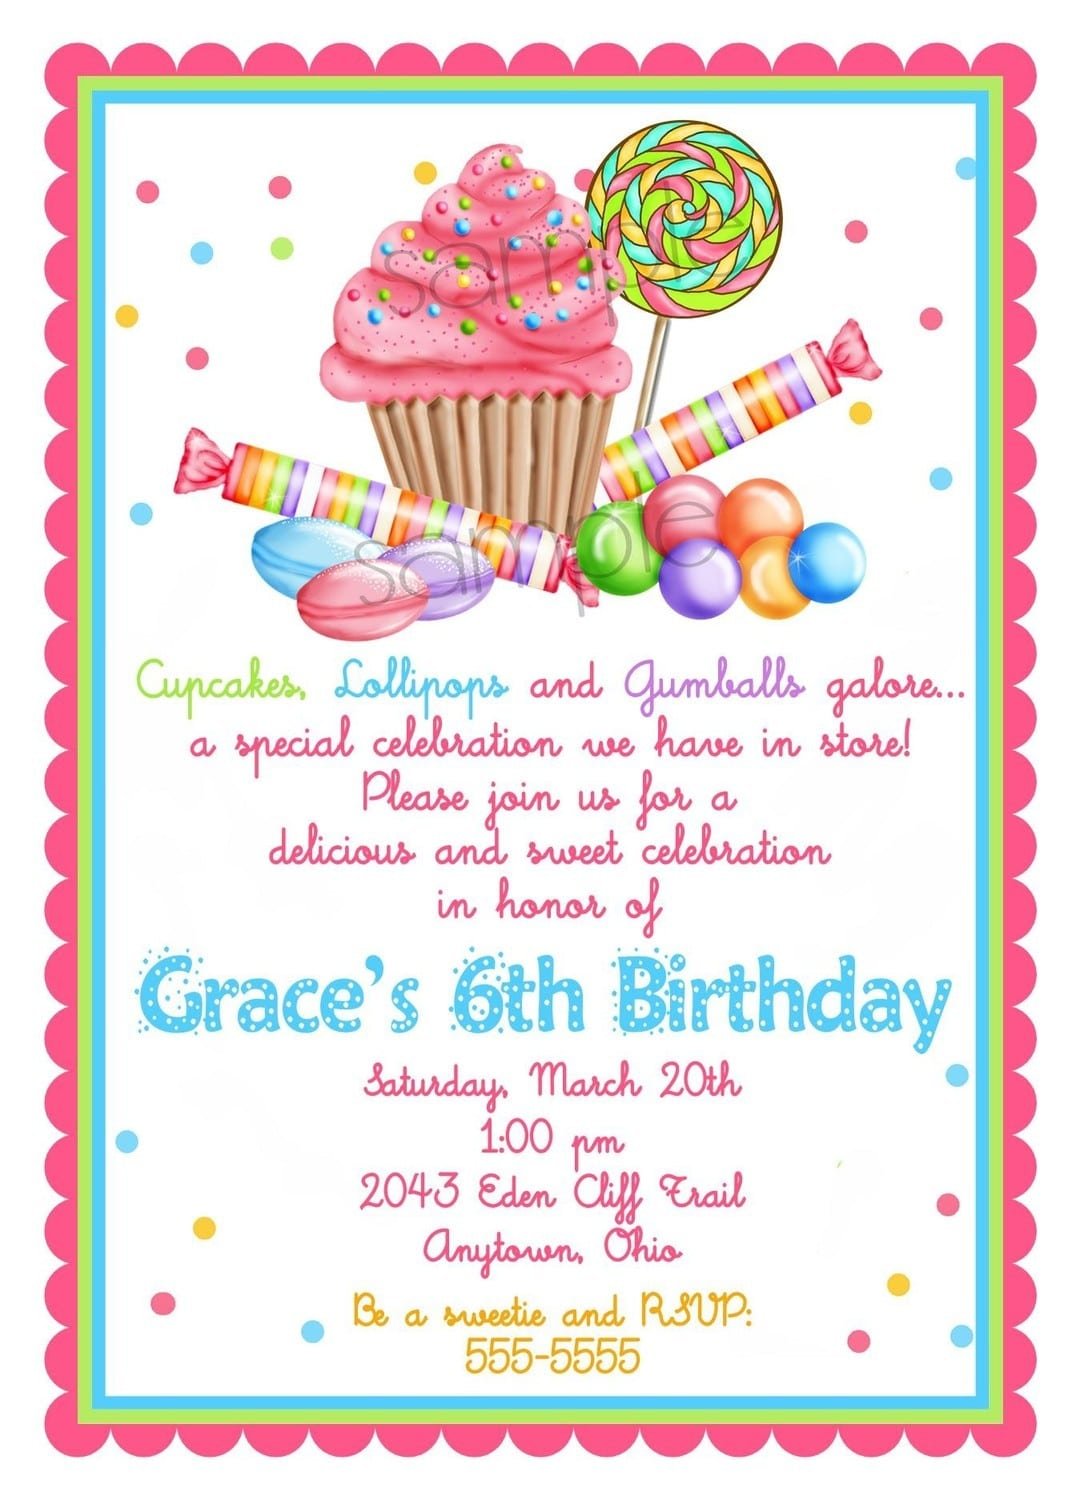 Innovative Cotton Candy Party Invitation About Rustic Article